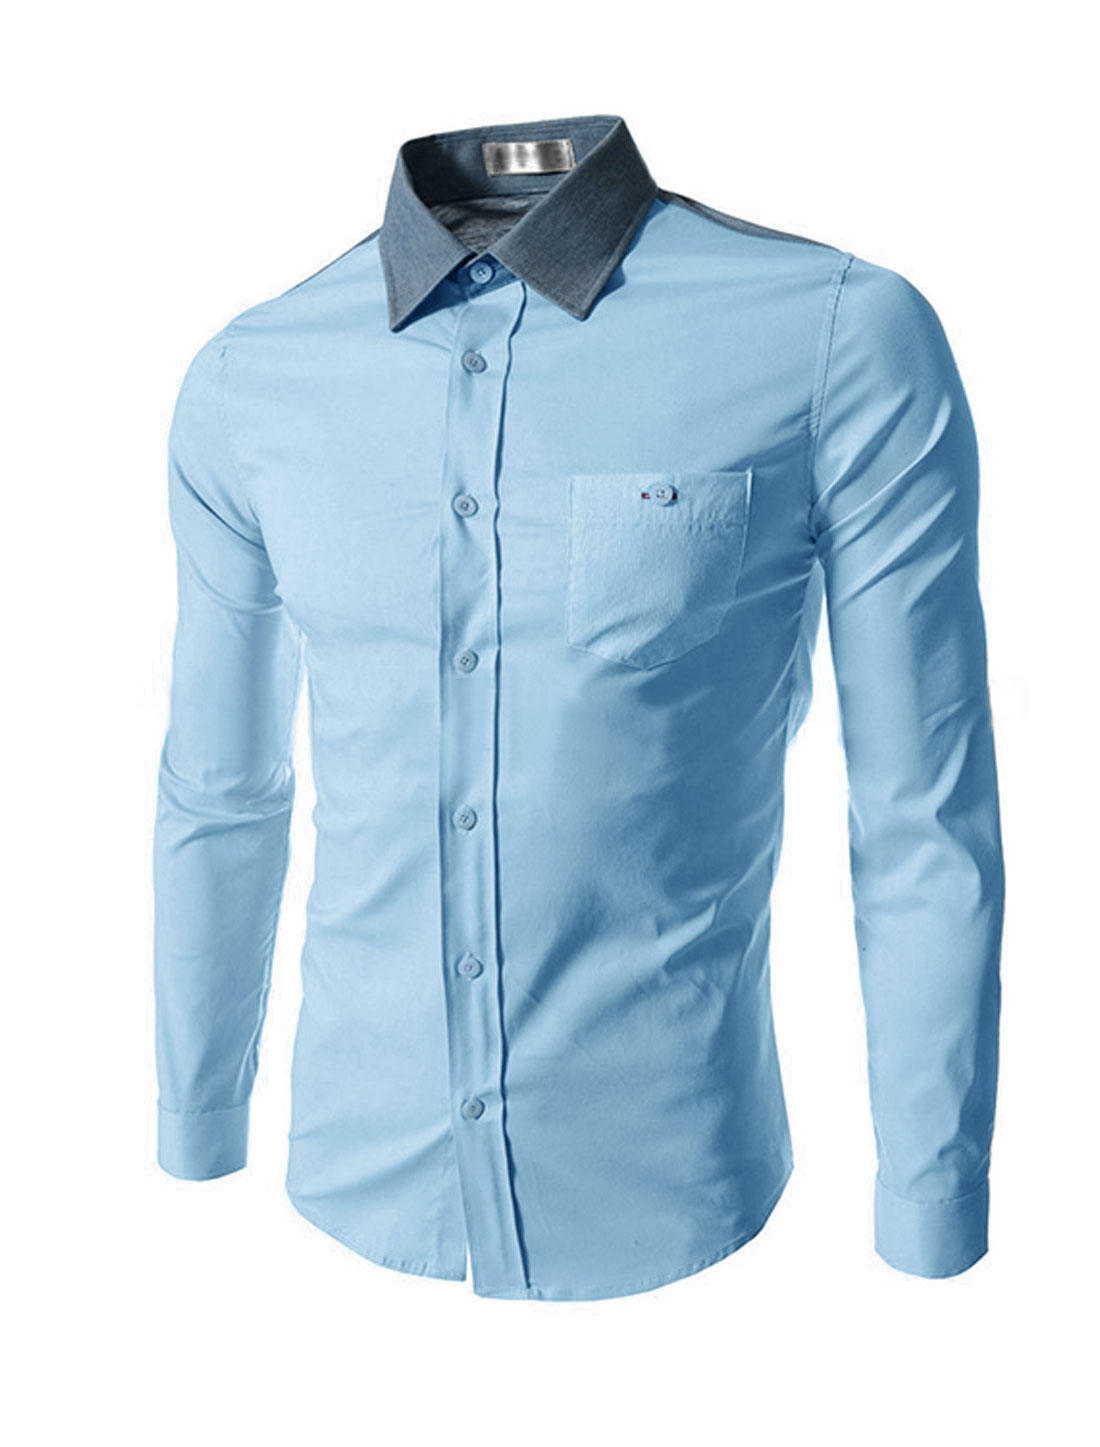 Man Point Collar Long Sleeves Striped Casual Shirts Light Blue M